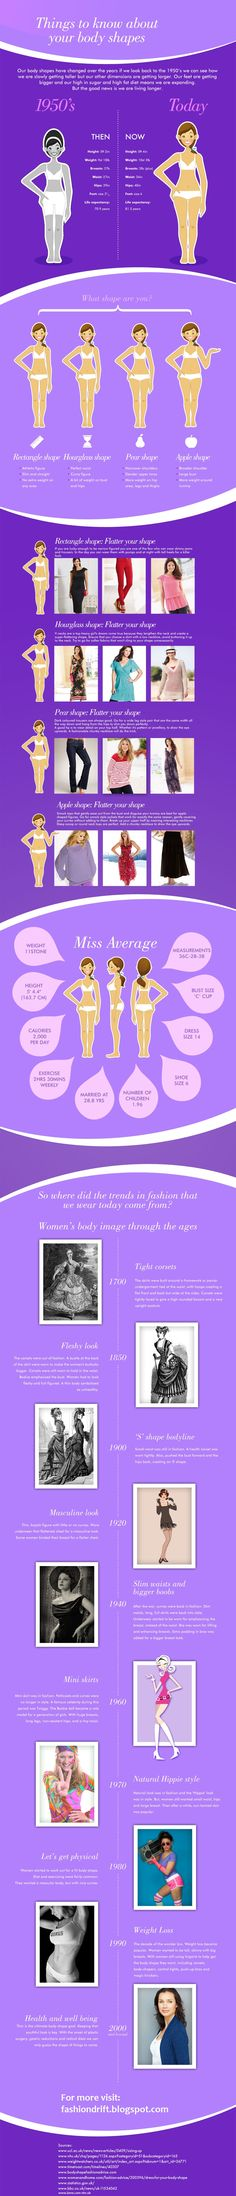 Things To Know About Your Body Shapes